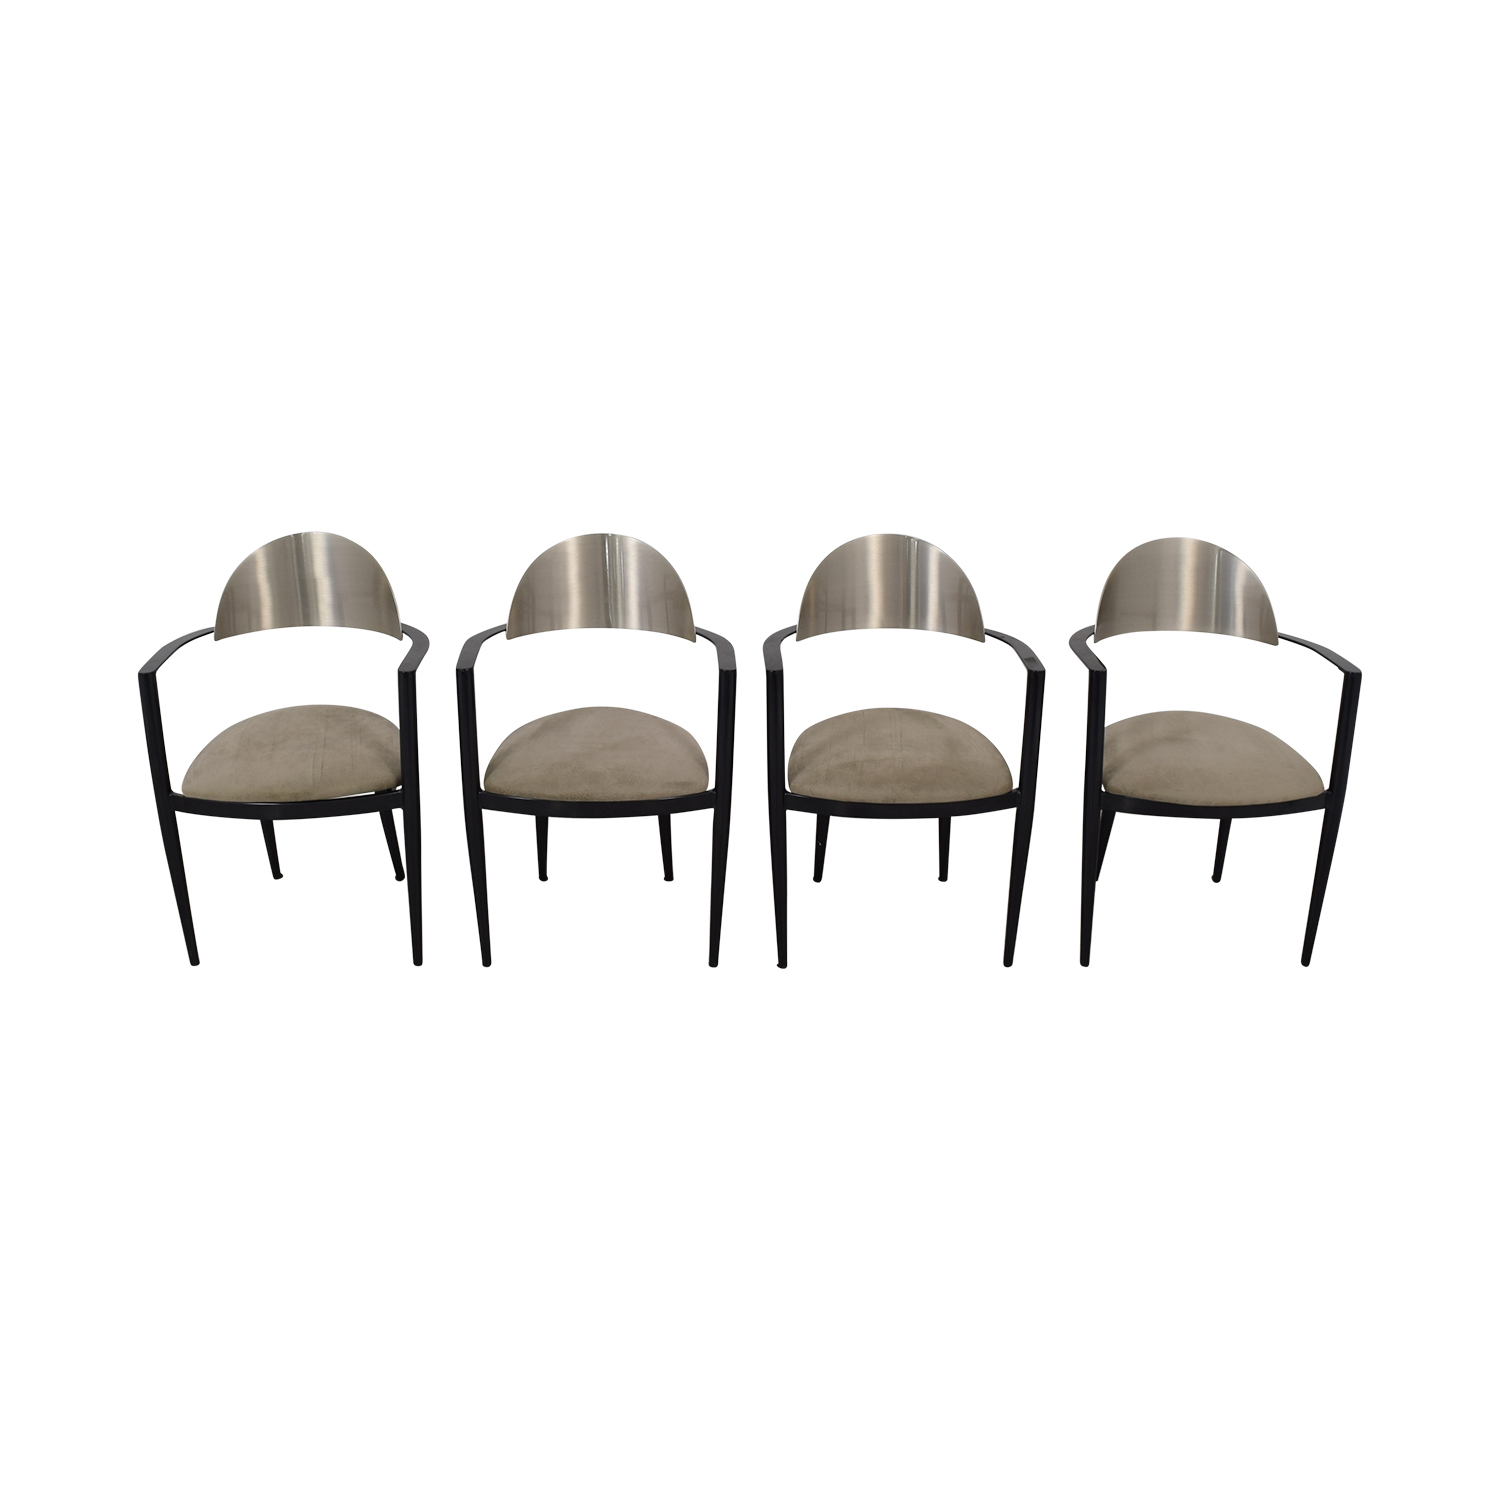 Chrome and Beige Upholstered Dining Chairs nj